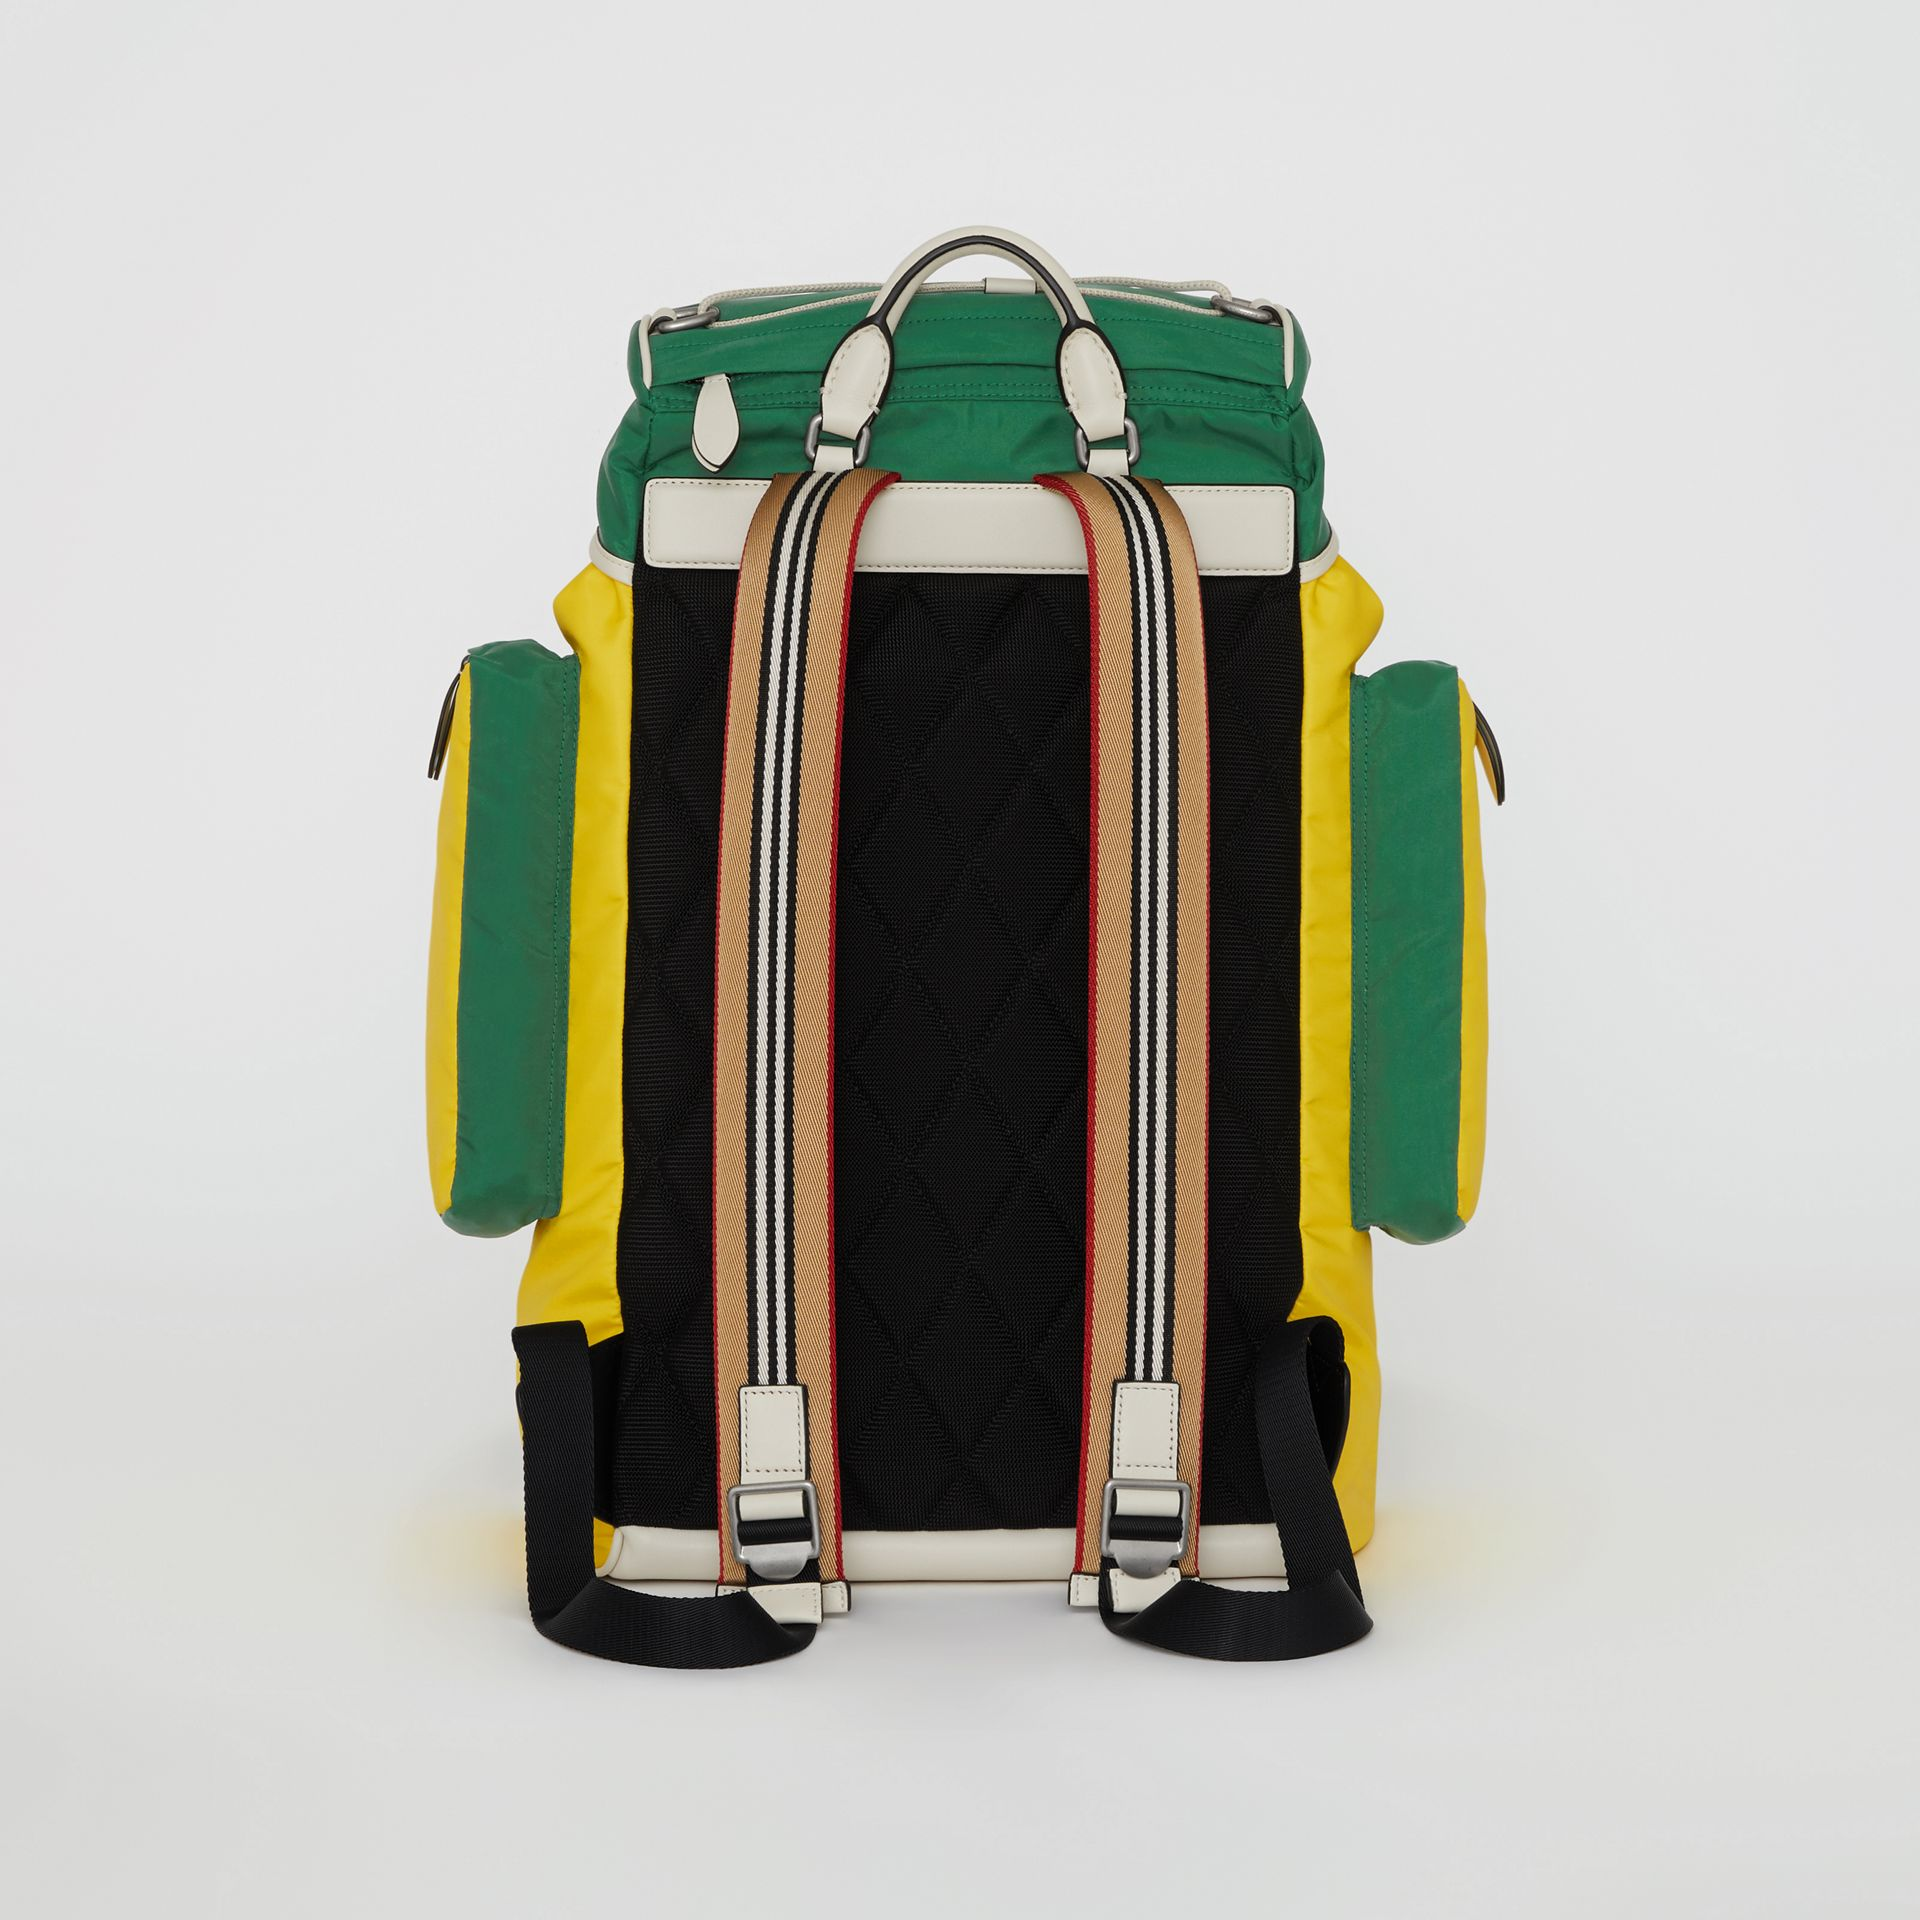 Tri-tone Nylon and Leather Backpack in Pine Green - Men | Burberry - gallery image 7